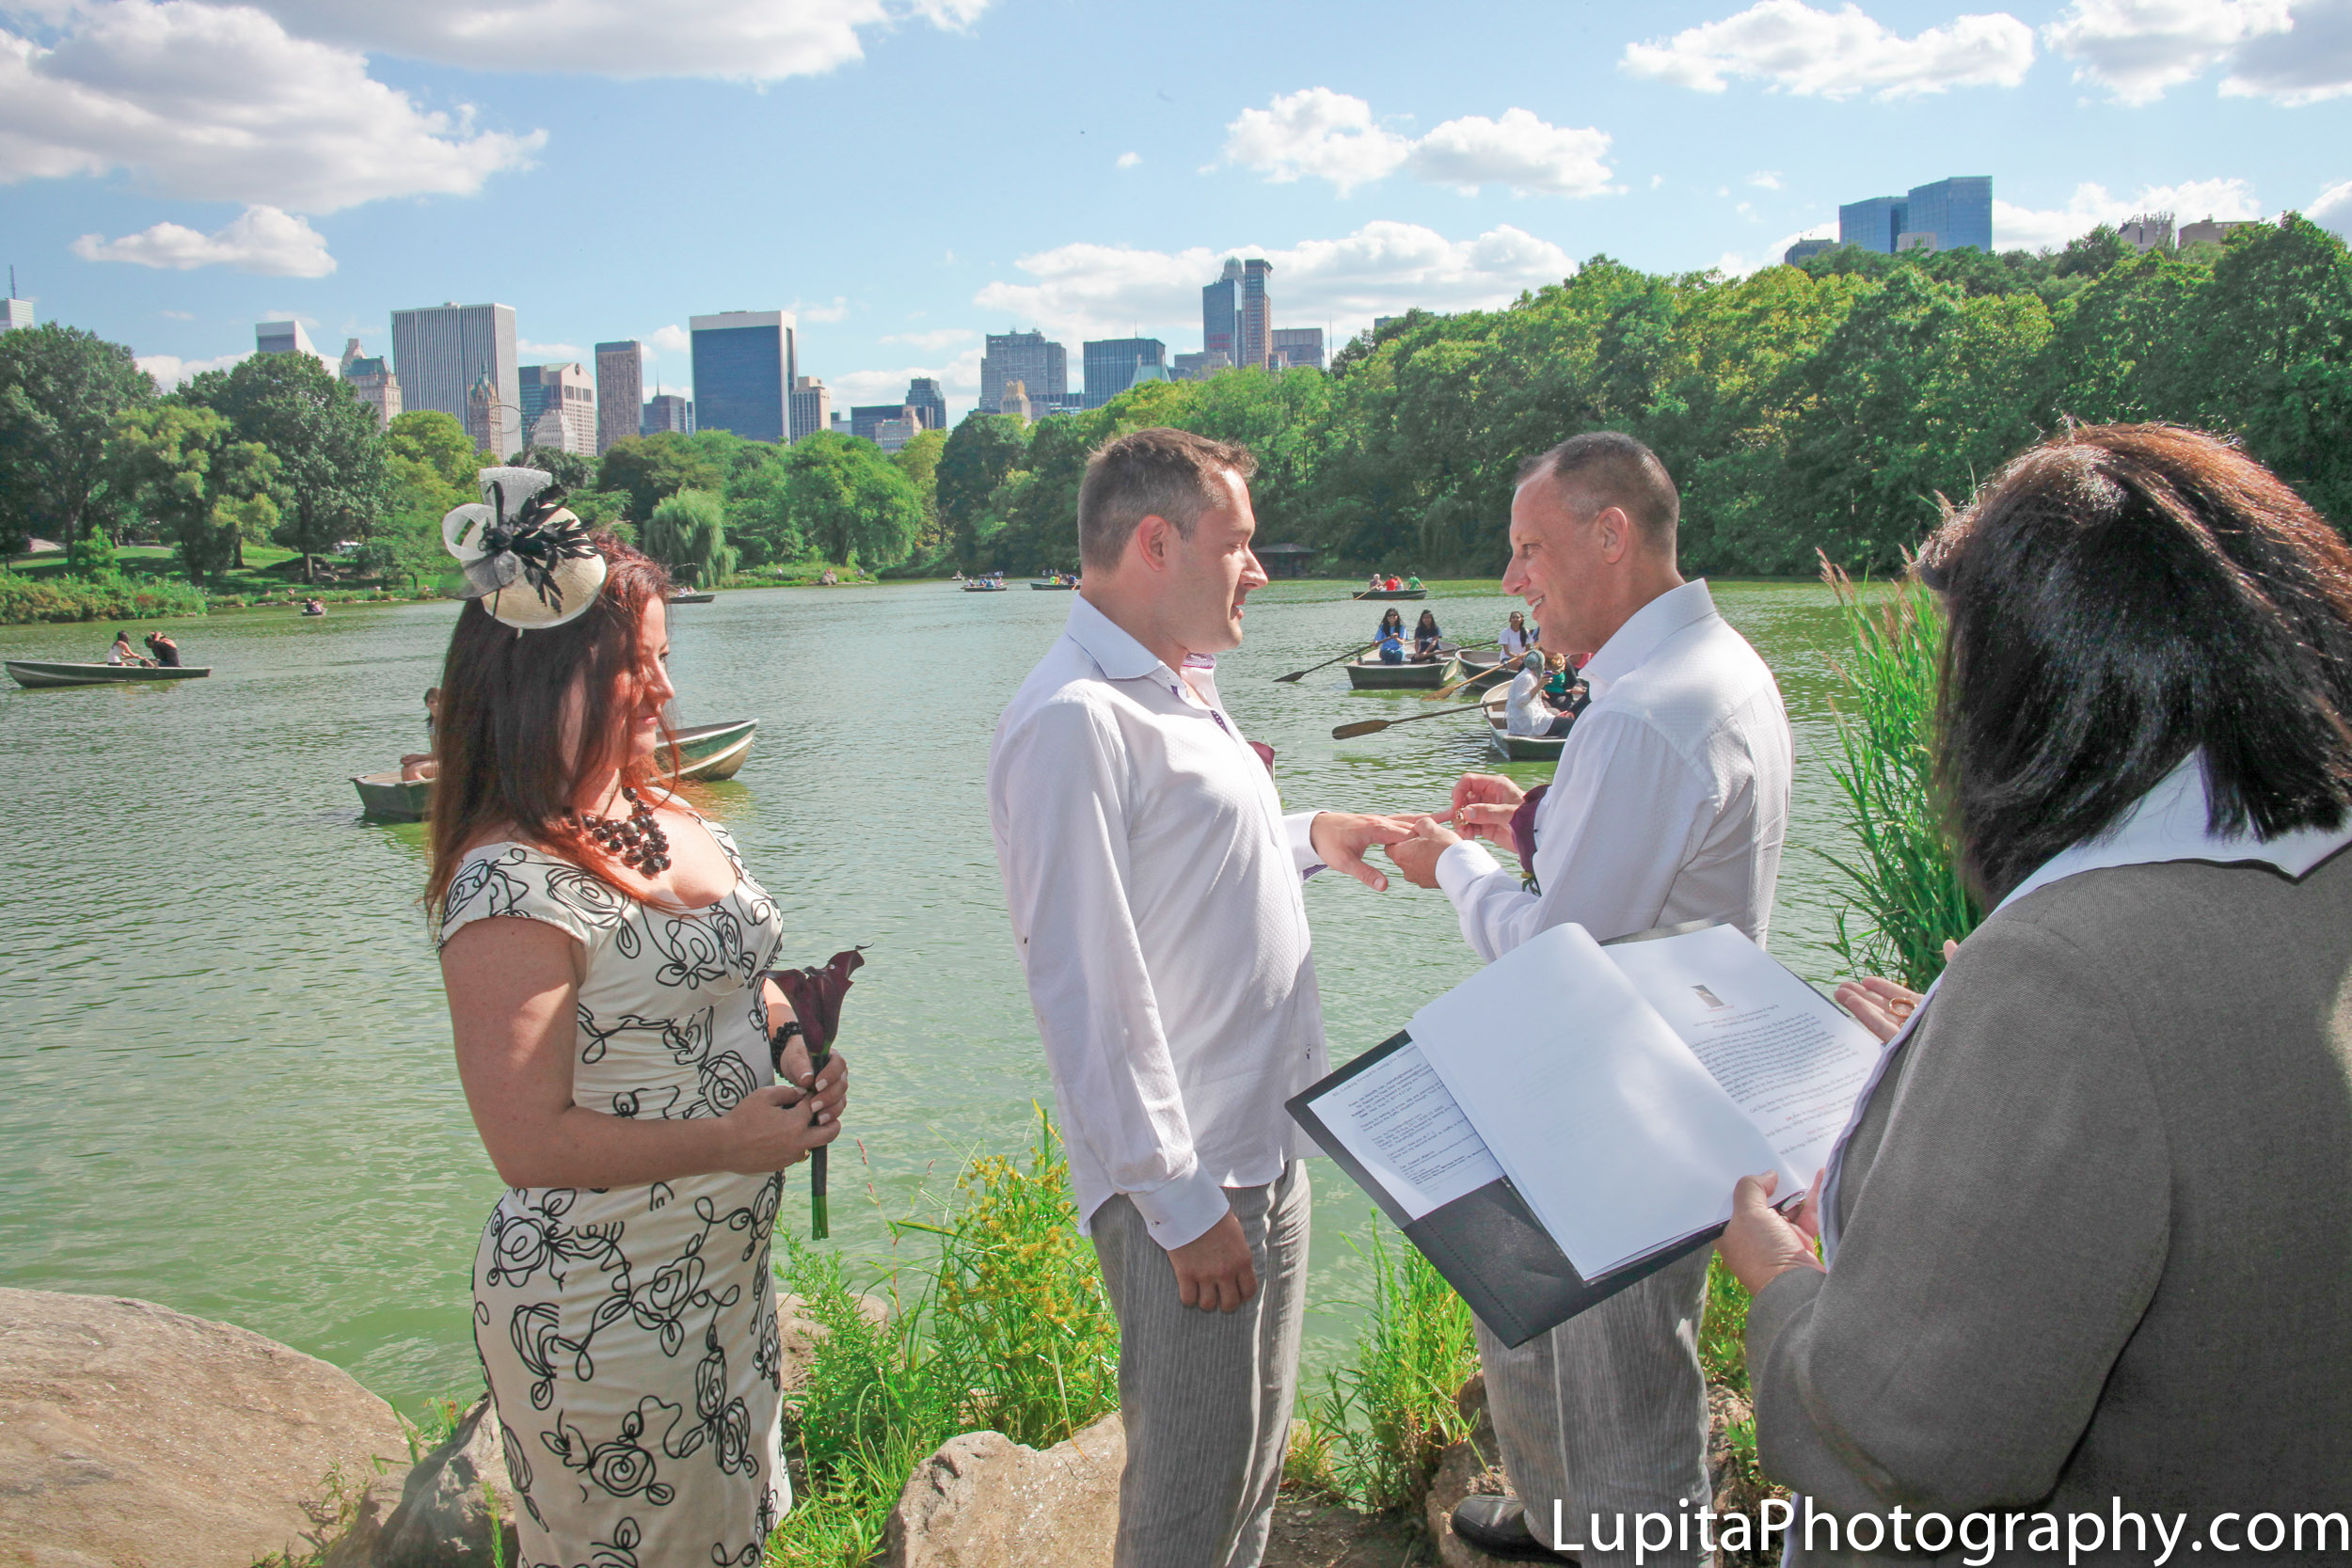 Ian and Peter on their wedding day in Central Park, New York City. Boda de Ian y Peter en Central Park, Nueva York.